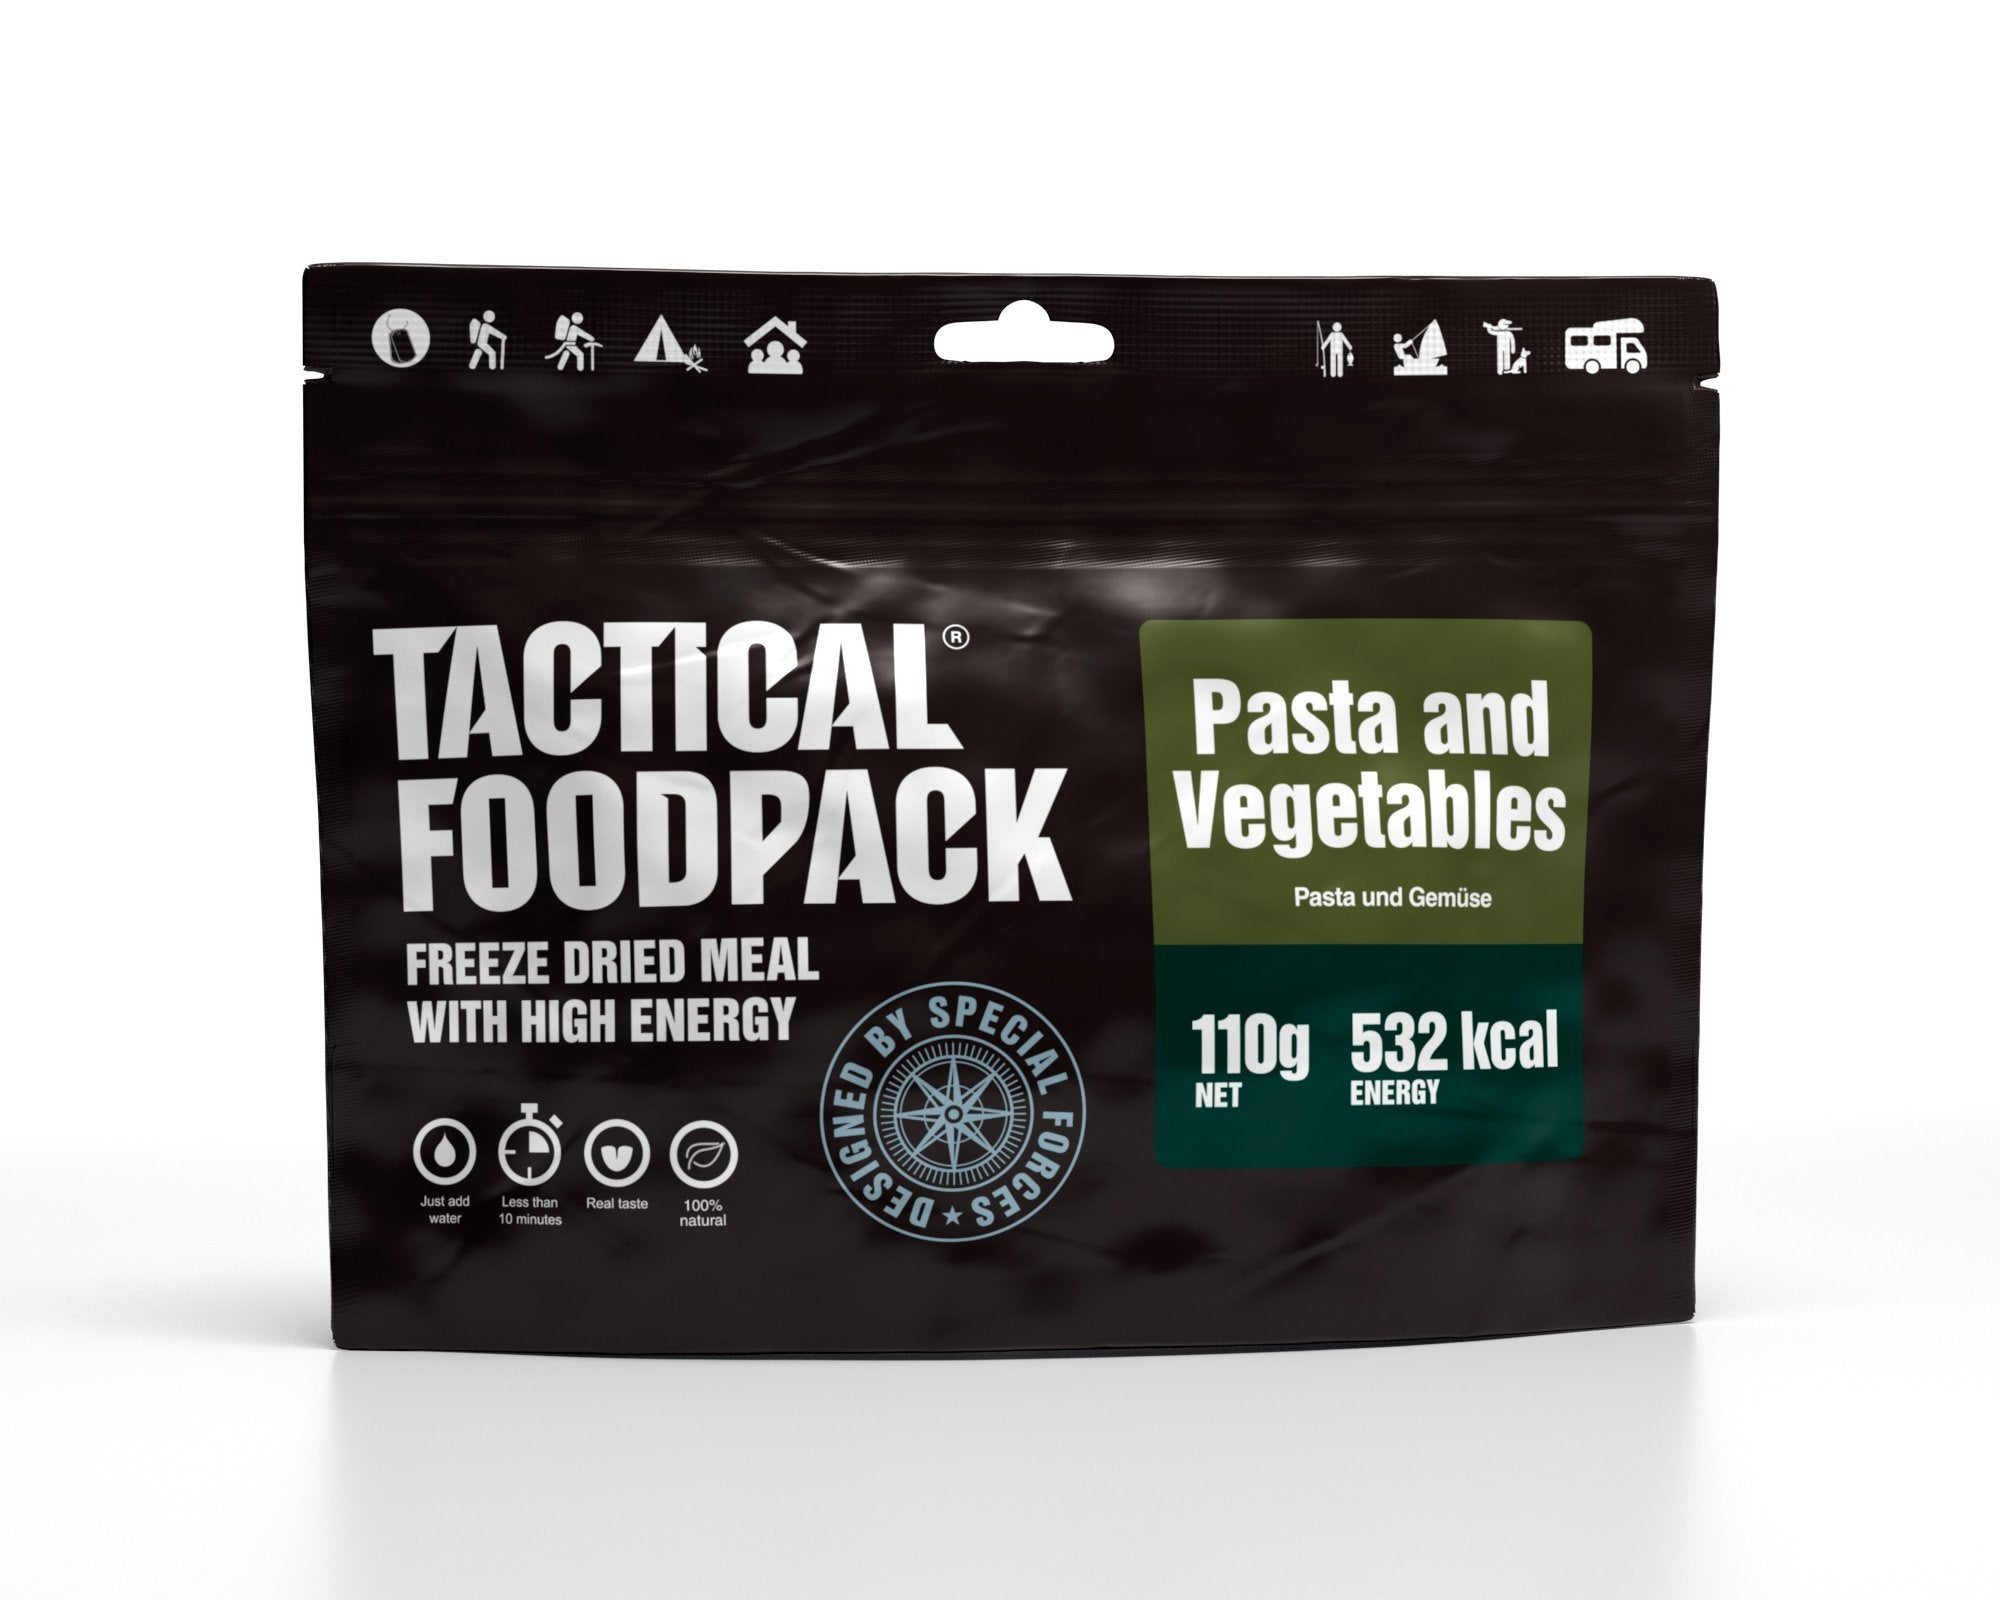 Tactical Foodpack Gemüse Pasta